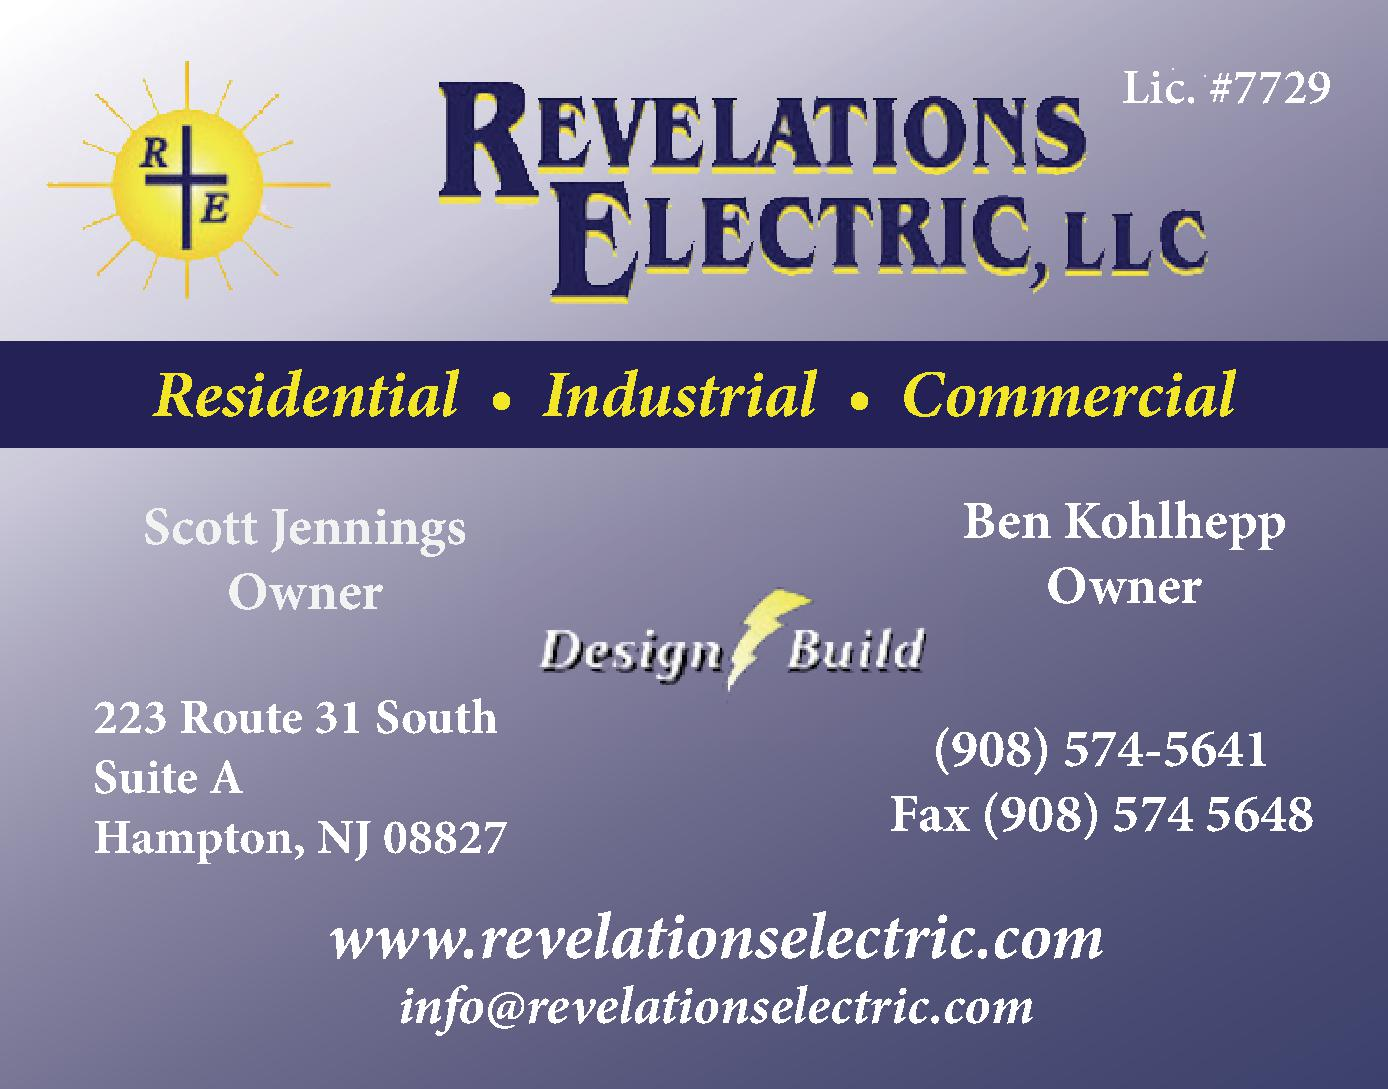 Revelations Electric, LLC